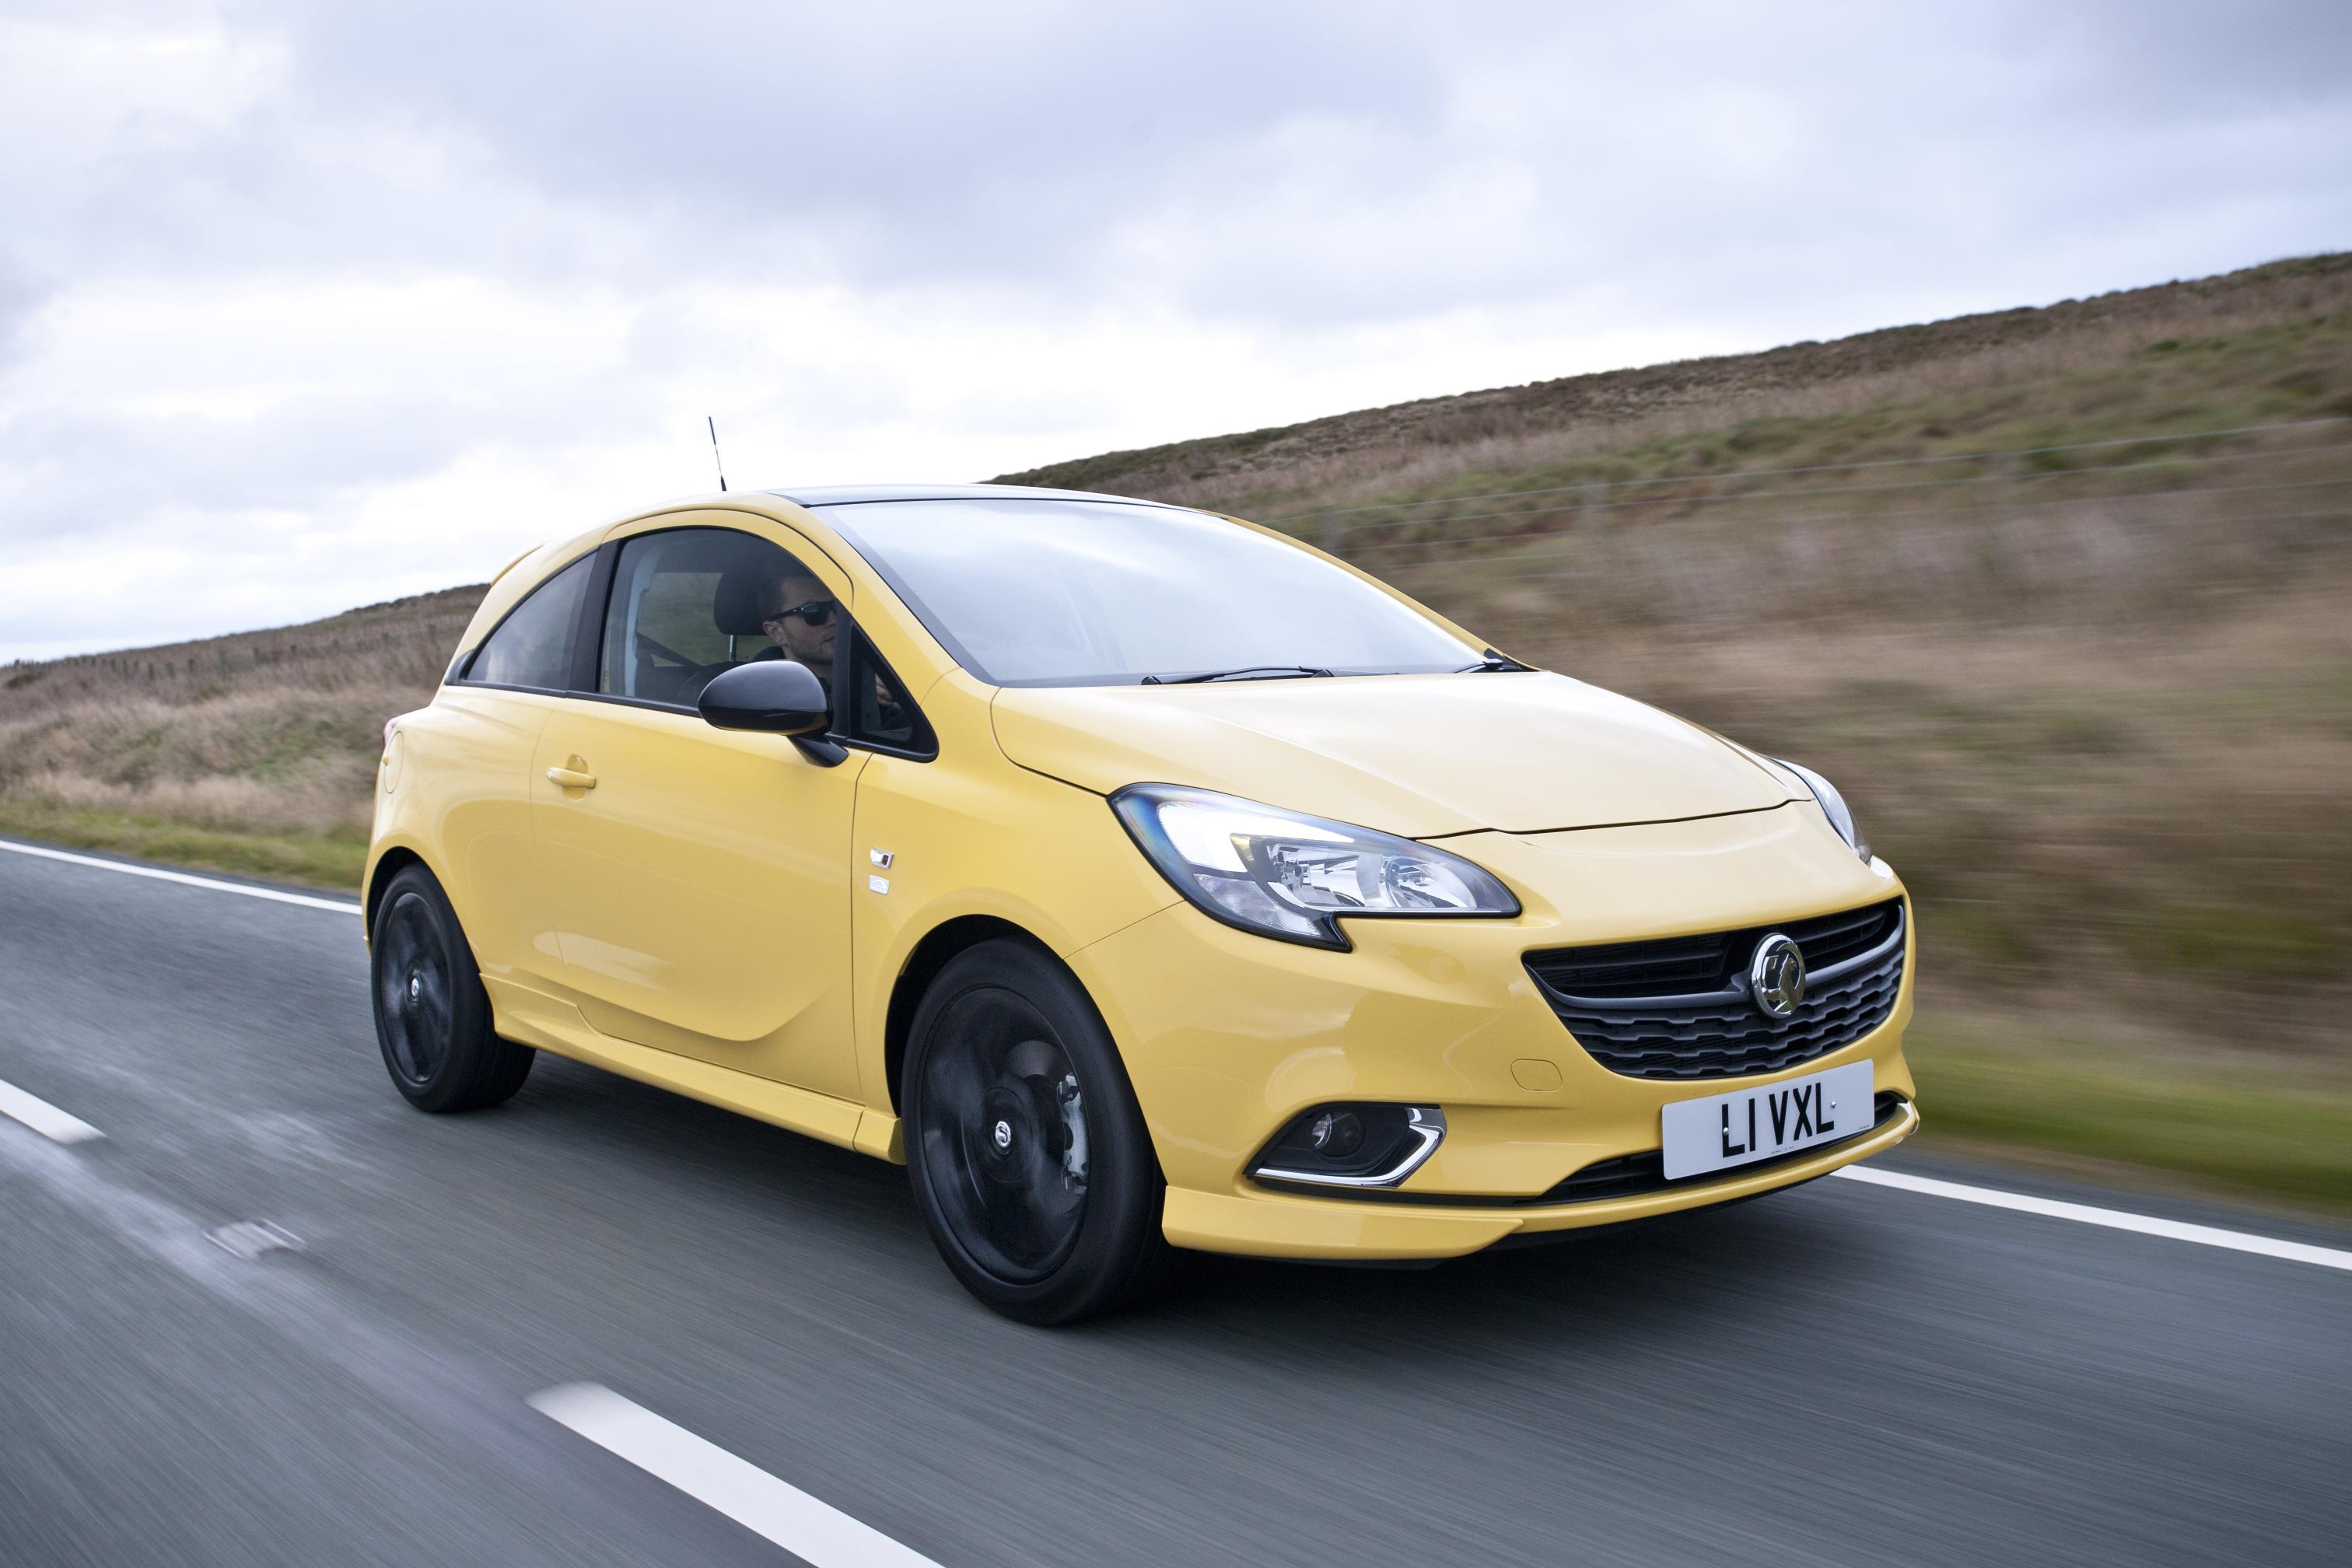 Vauxhall Corsa in yellow on road